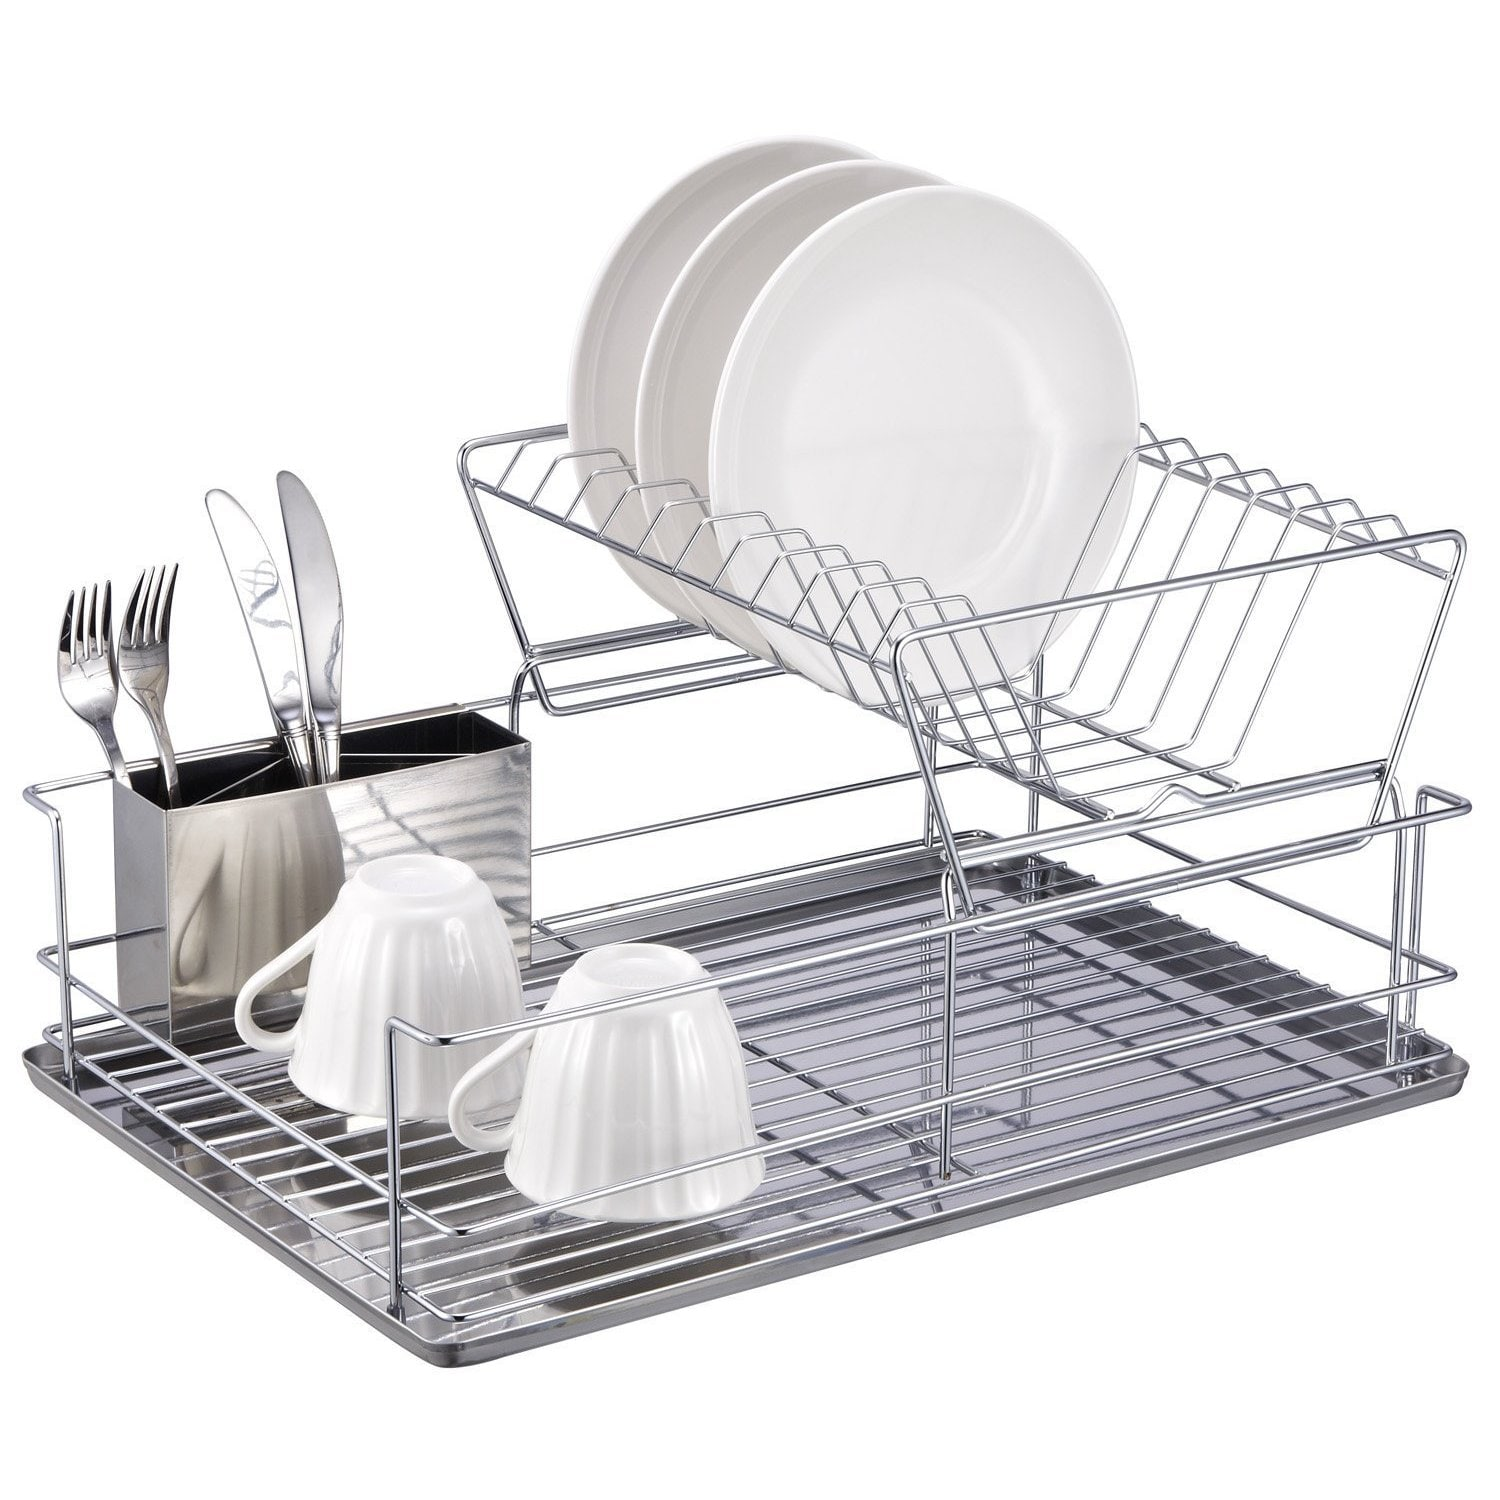 Home Basics 2-tier Dish Rack - Free Shipping On Orders Over $45 -  Overstock.com - 17293309